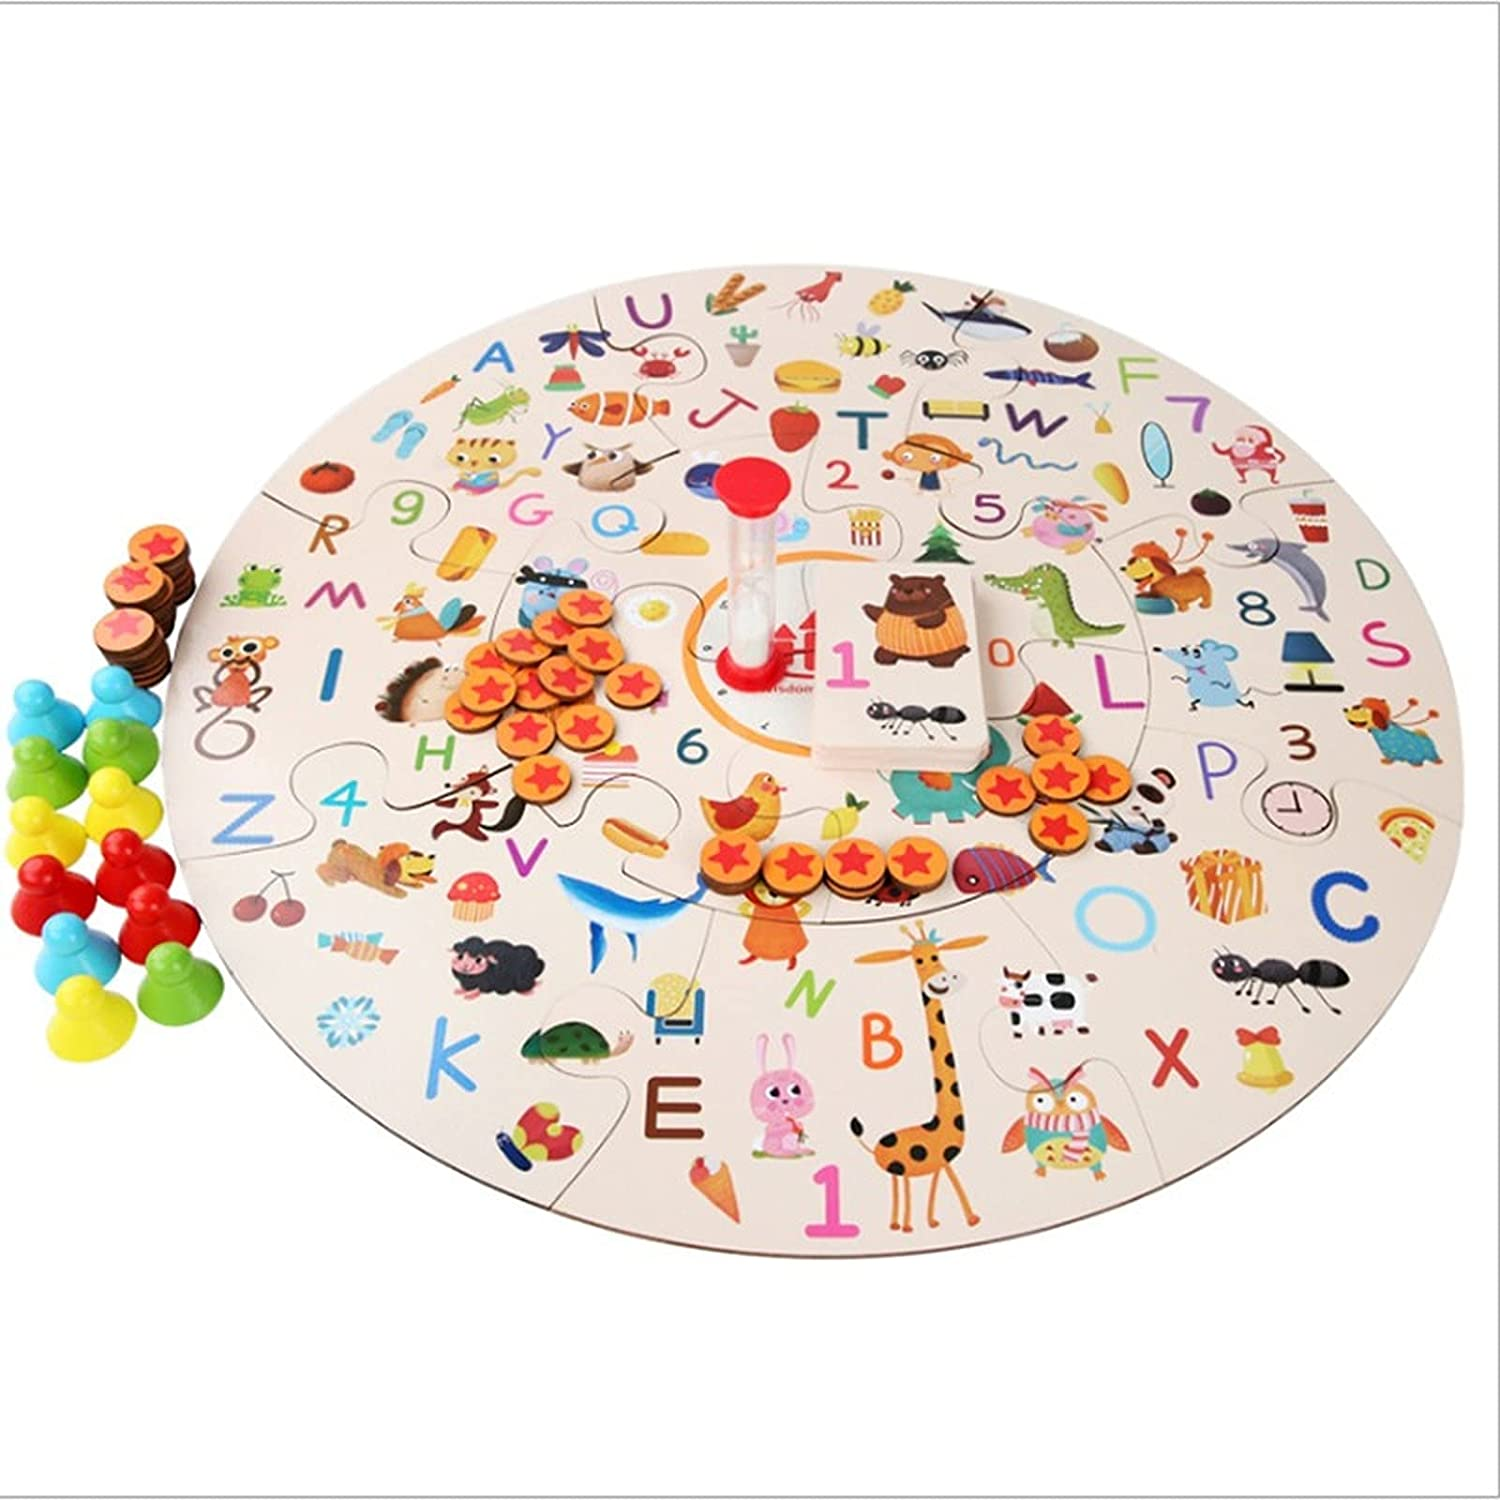 Parent-Child Picture Finding Game Special sale item Concentration Popular Toys to Improve